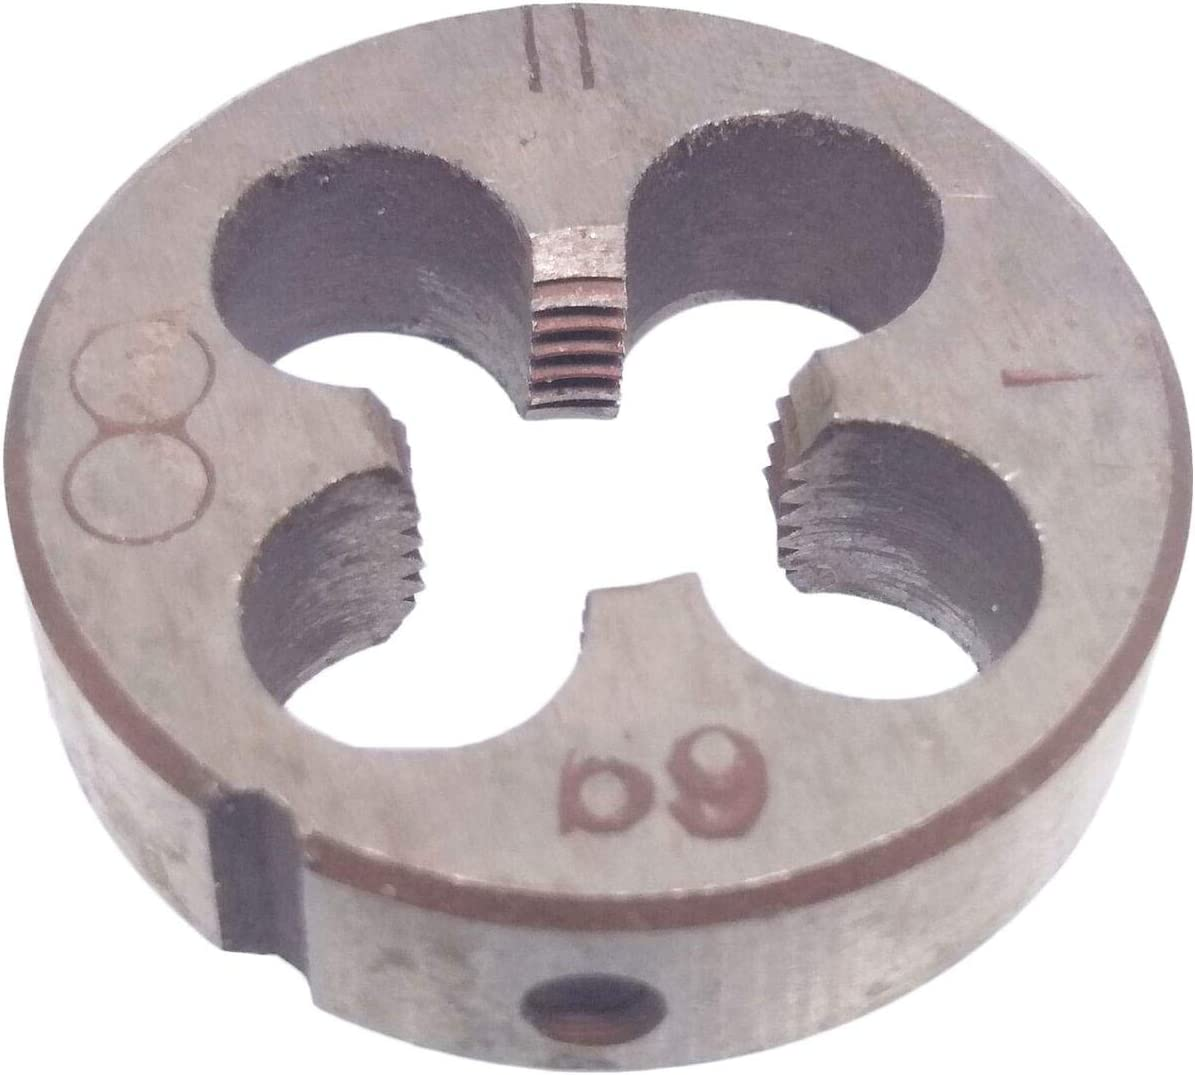 Yodaoke HSS Year-end gift 11mm x 1 Direct stock discount Metric Die Pitc Thread Hand M11 Right 1mm